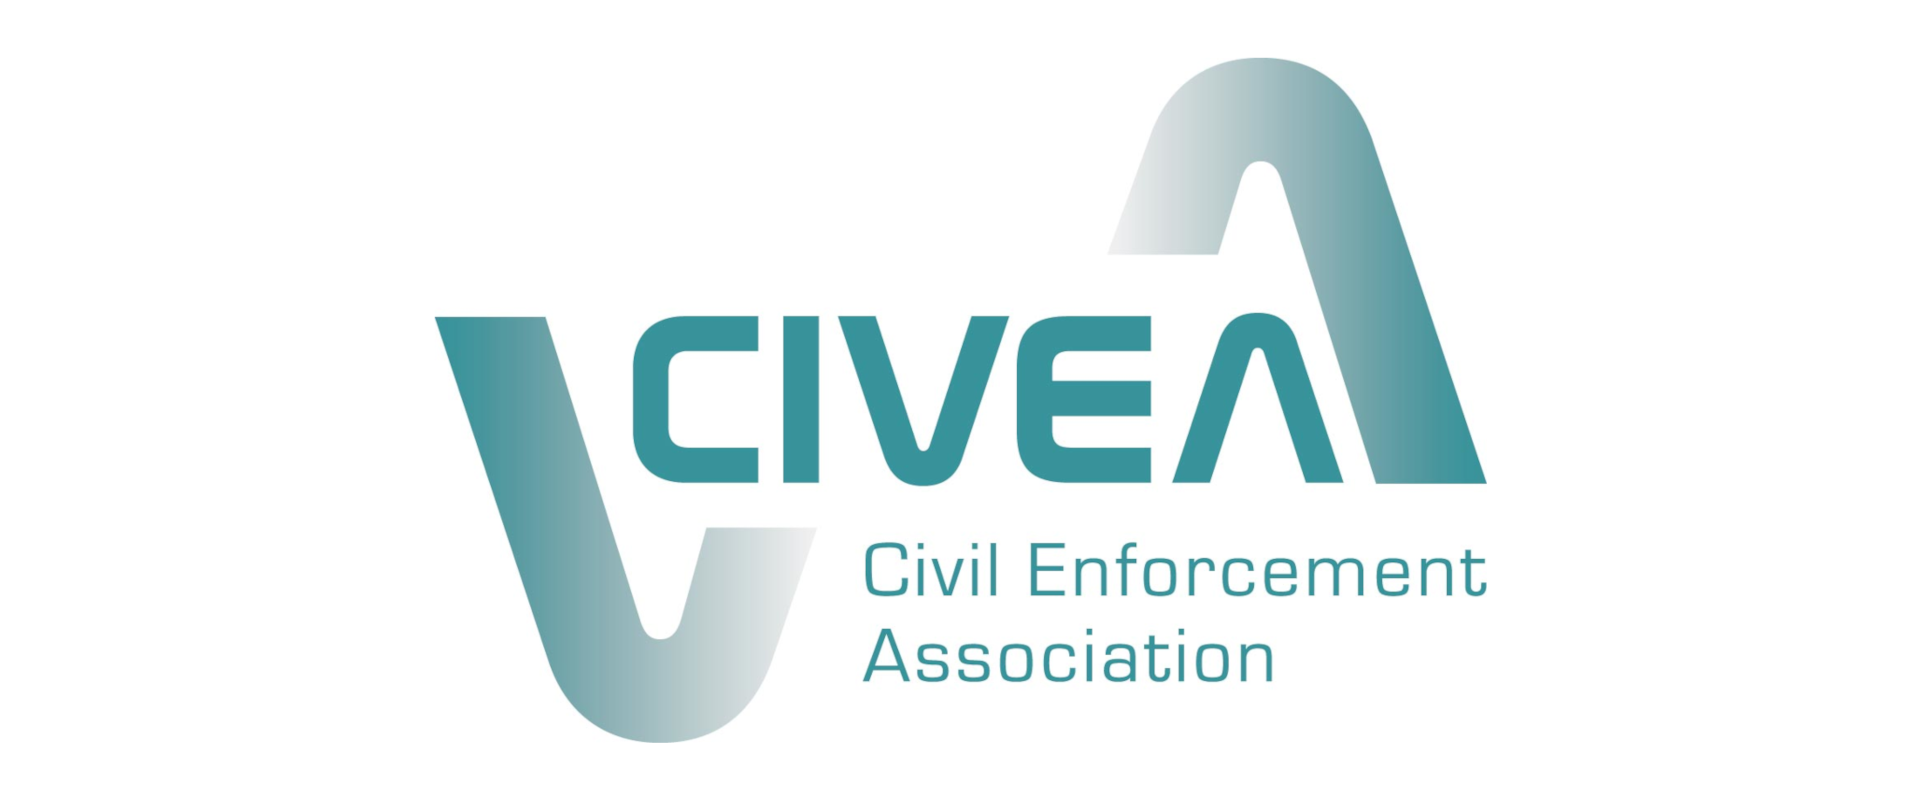 Civil Enforcement Association (CIVEA) logo